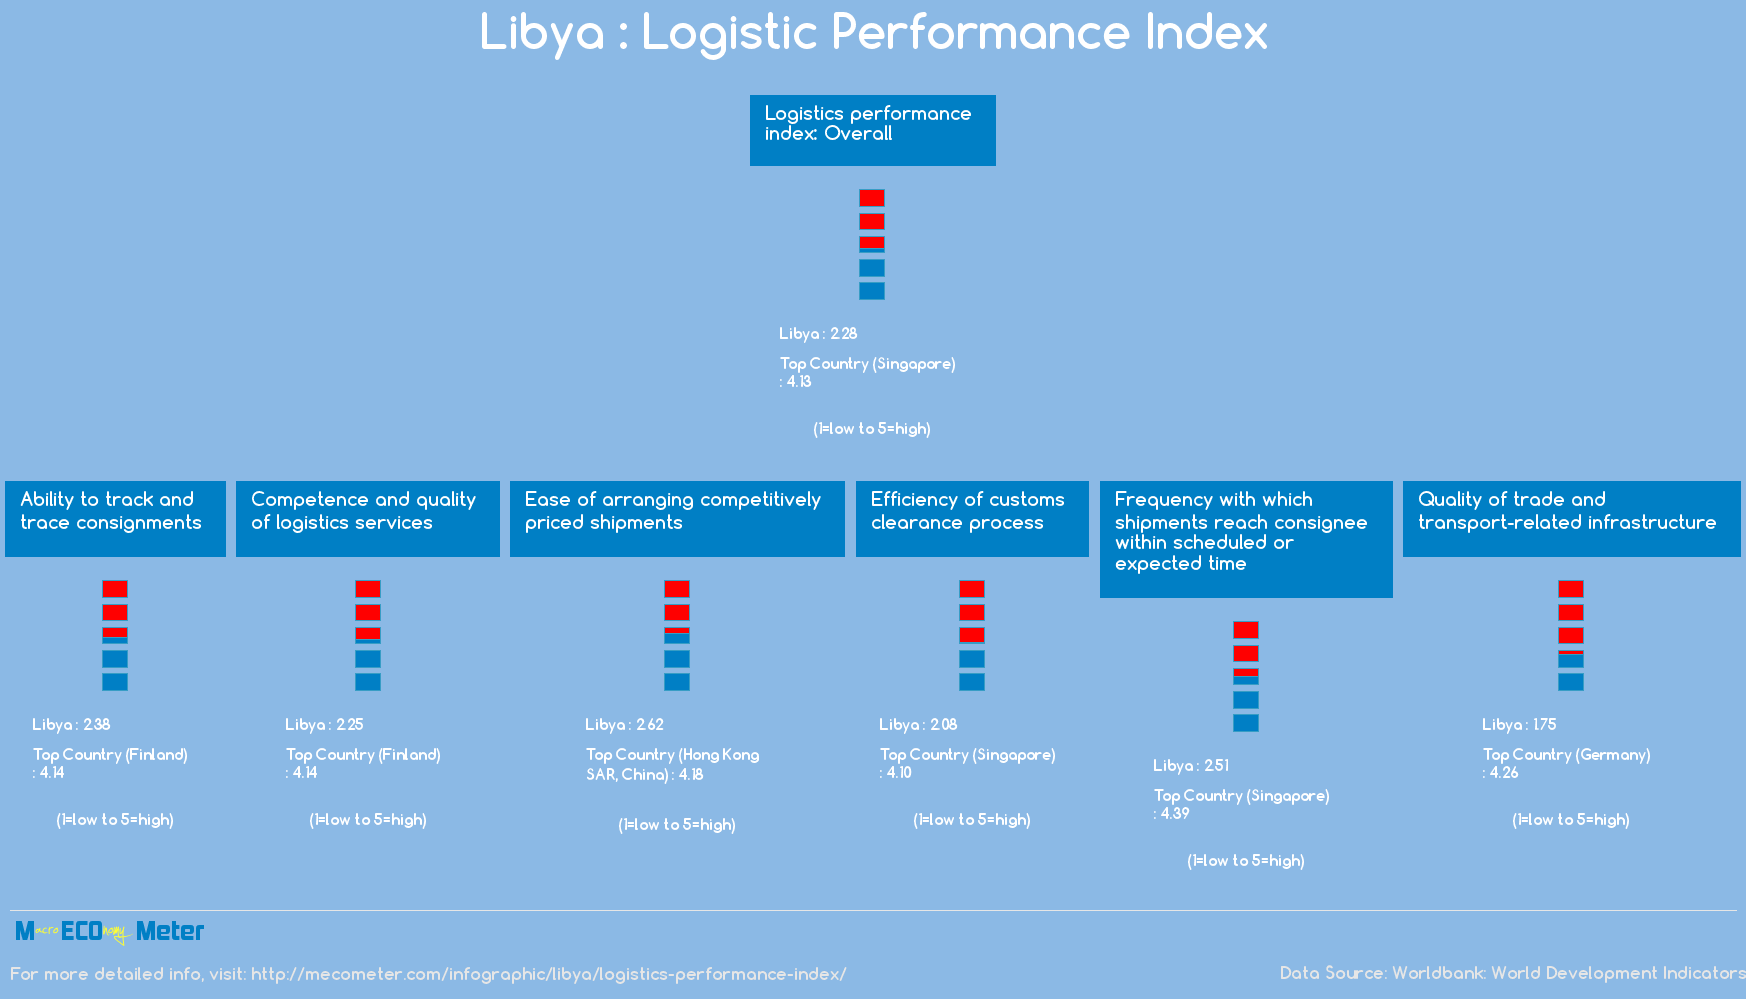 Libya : Logistic Performance Index